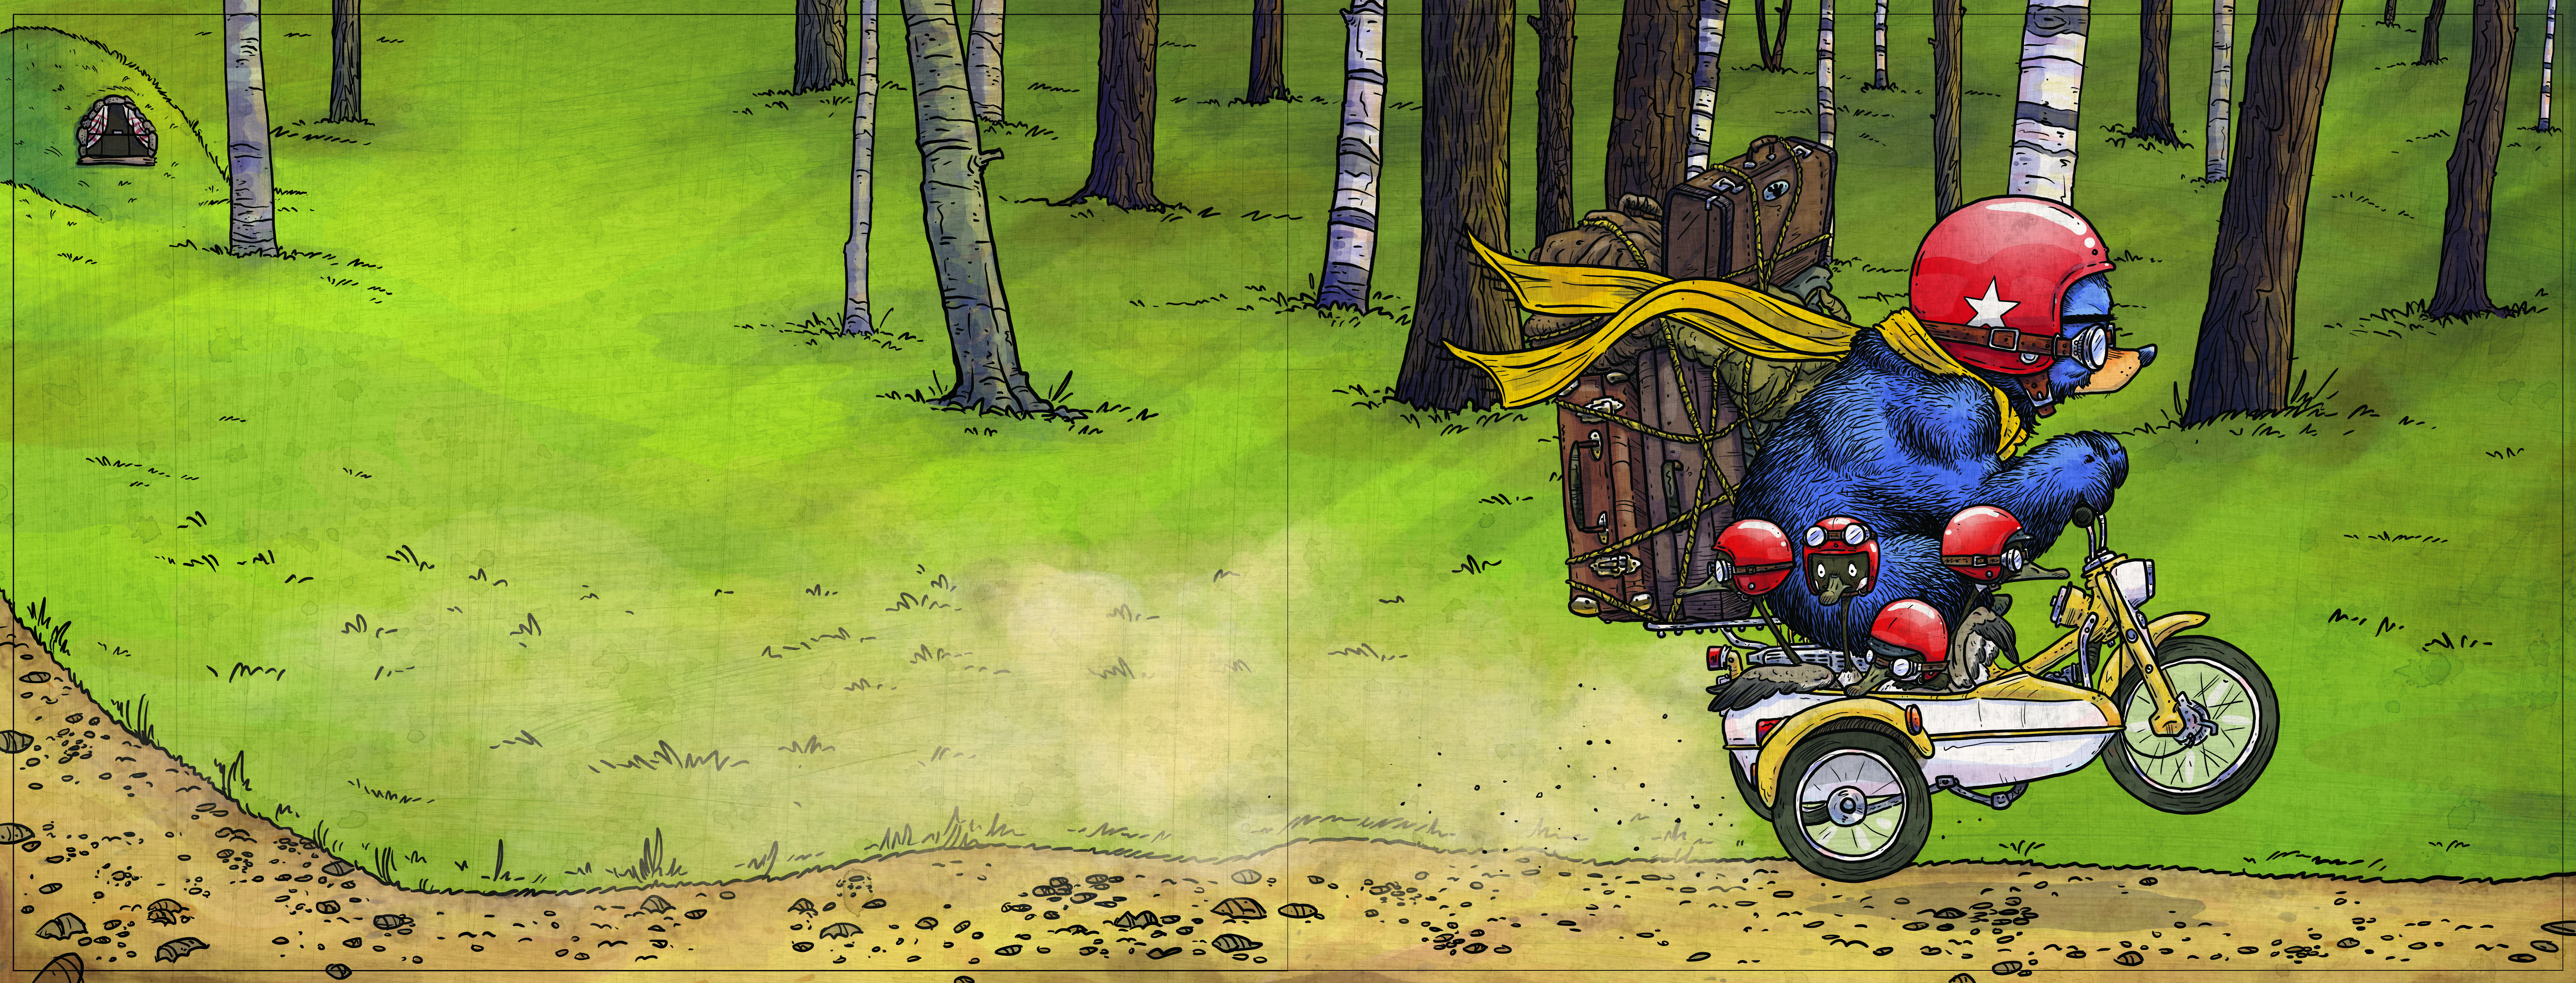 celebrate-picture-books-picture-book-review-bruce's-big-move-motorcycle